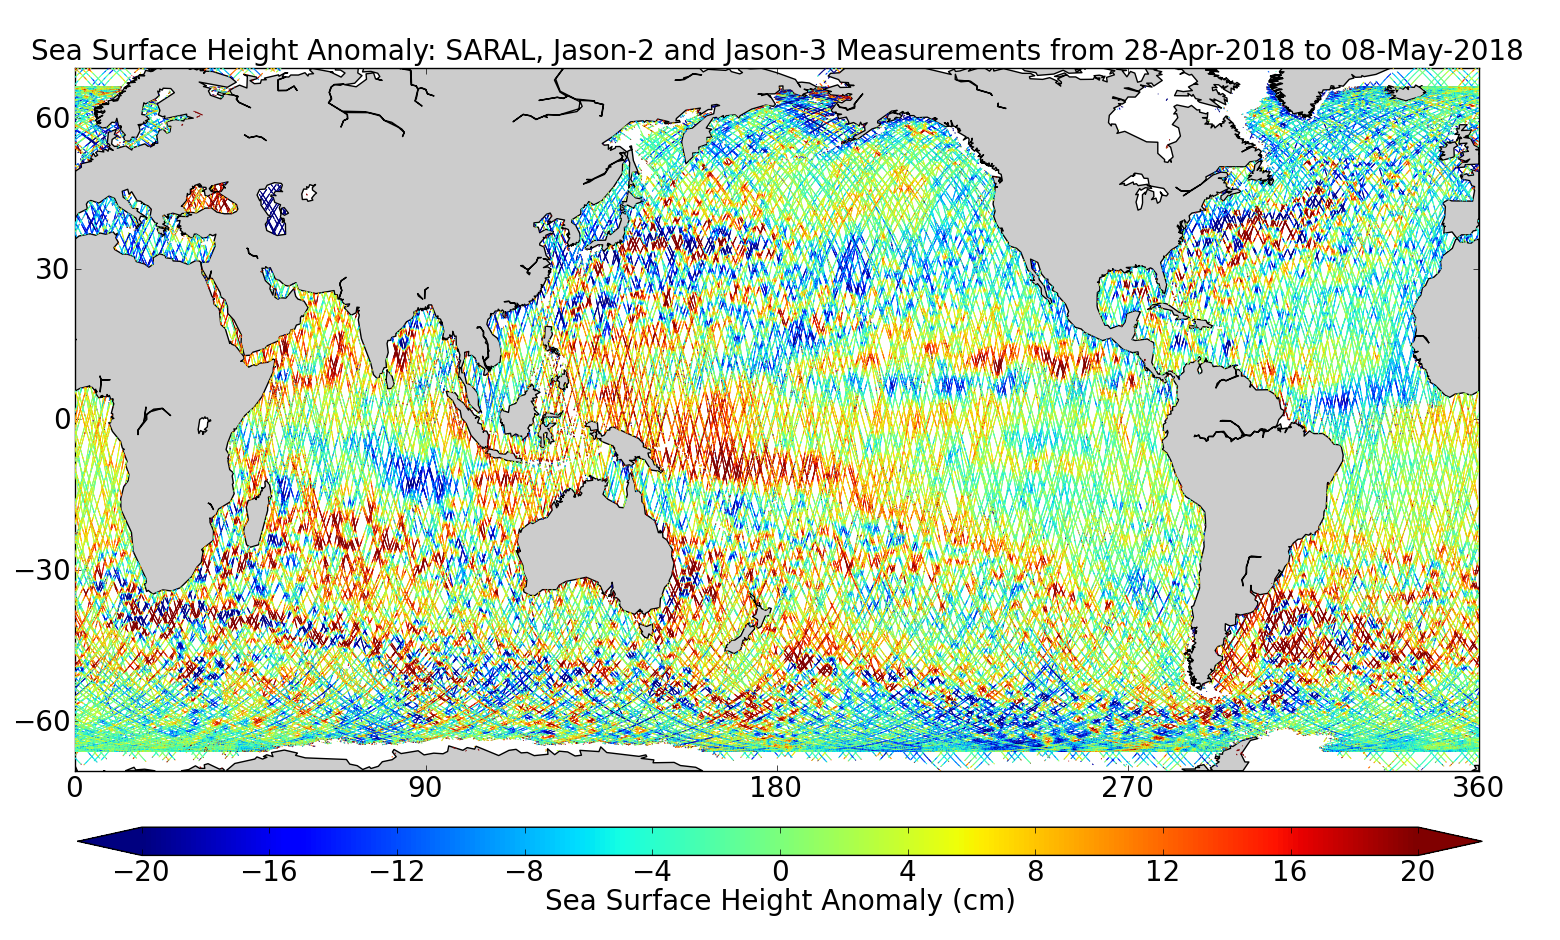 Sea Surface Height Anomaly: SARAL, Jason-2 and Jason-3 Measurements from 28-Apr-2018 to 08-May-2018